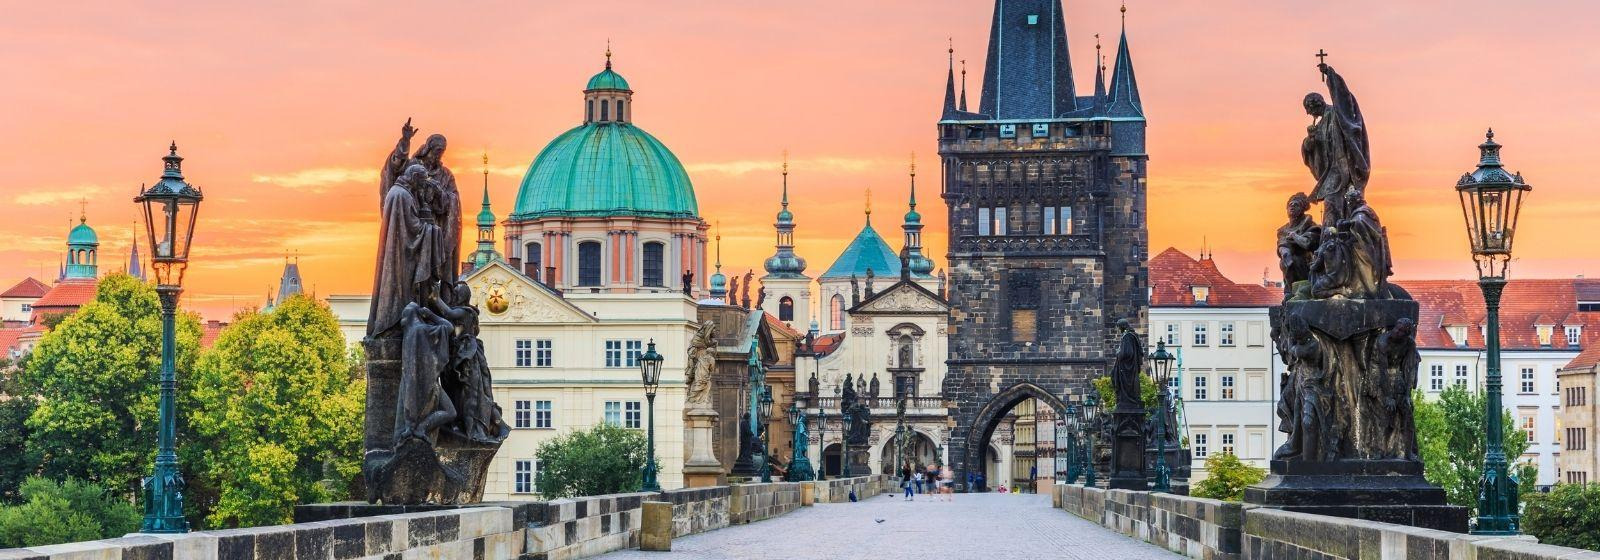 Things to do in the Czech Republic